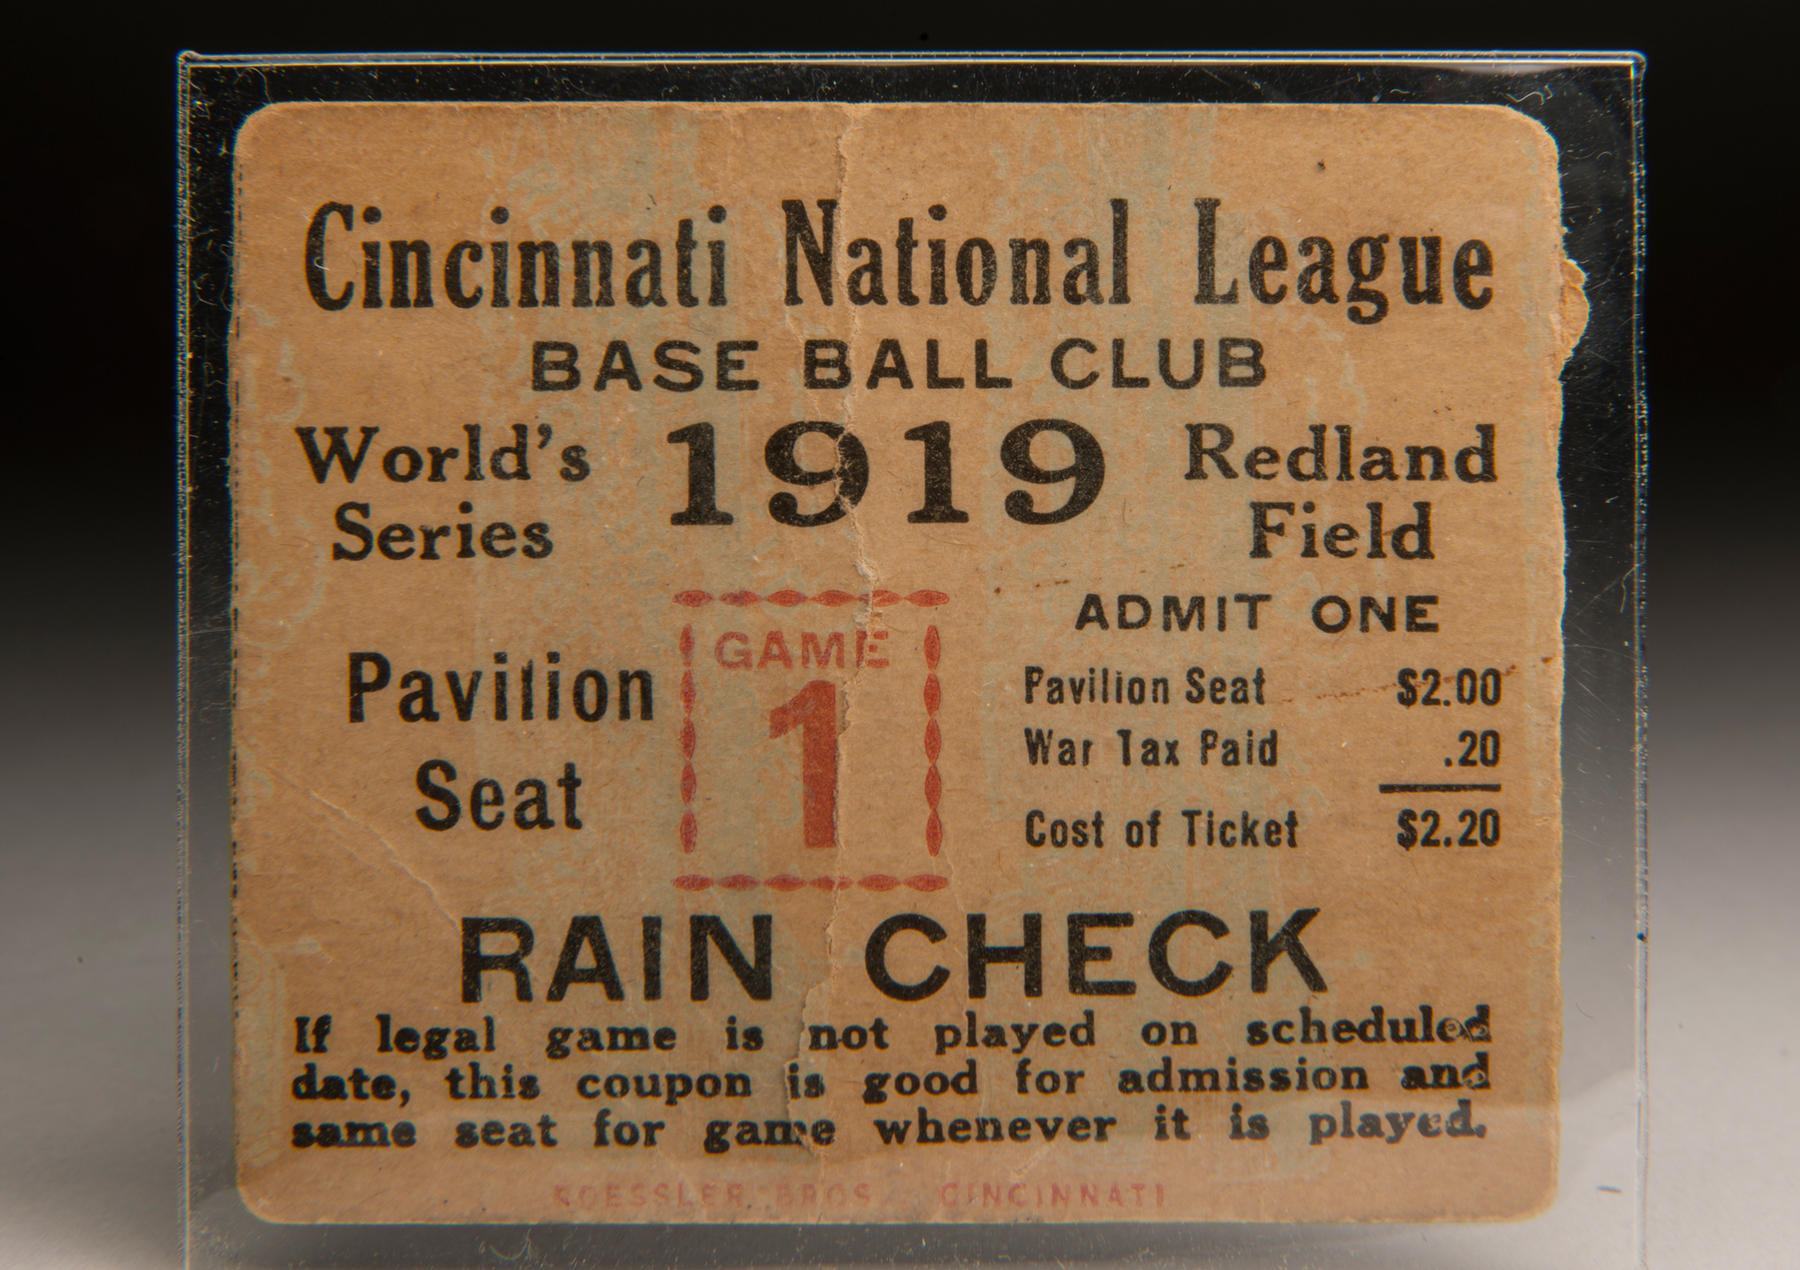 Ticket to Game 1 of the 1919 World Series, played at Redland Field. B-513-70a (Milo Stewart Jr. / National Baseball Hall of Fame Jr.)